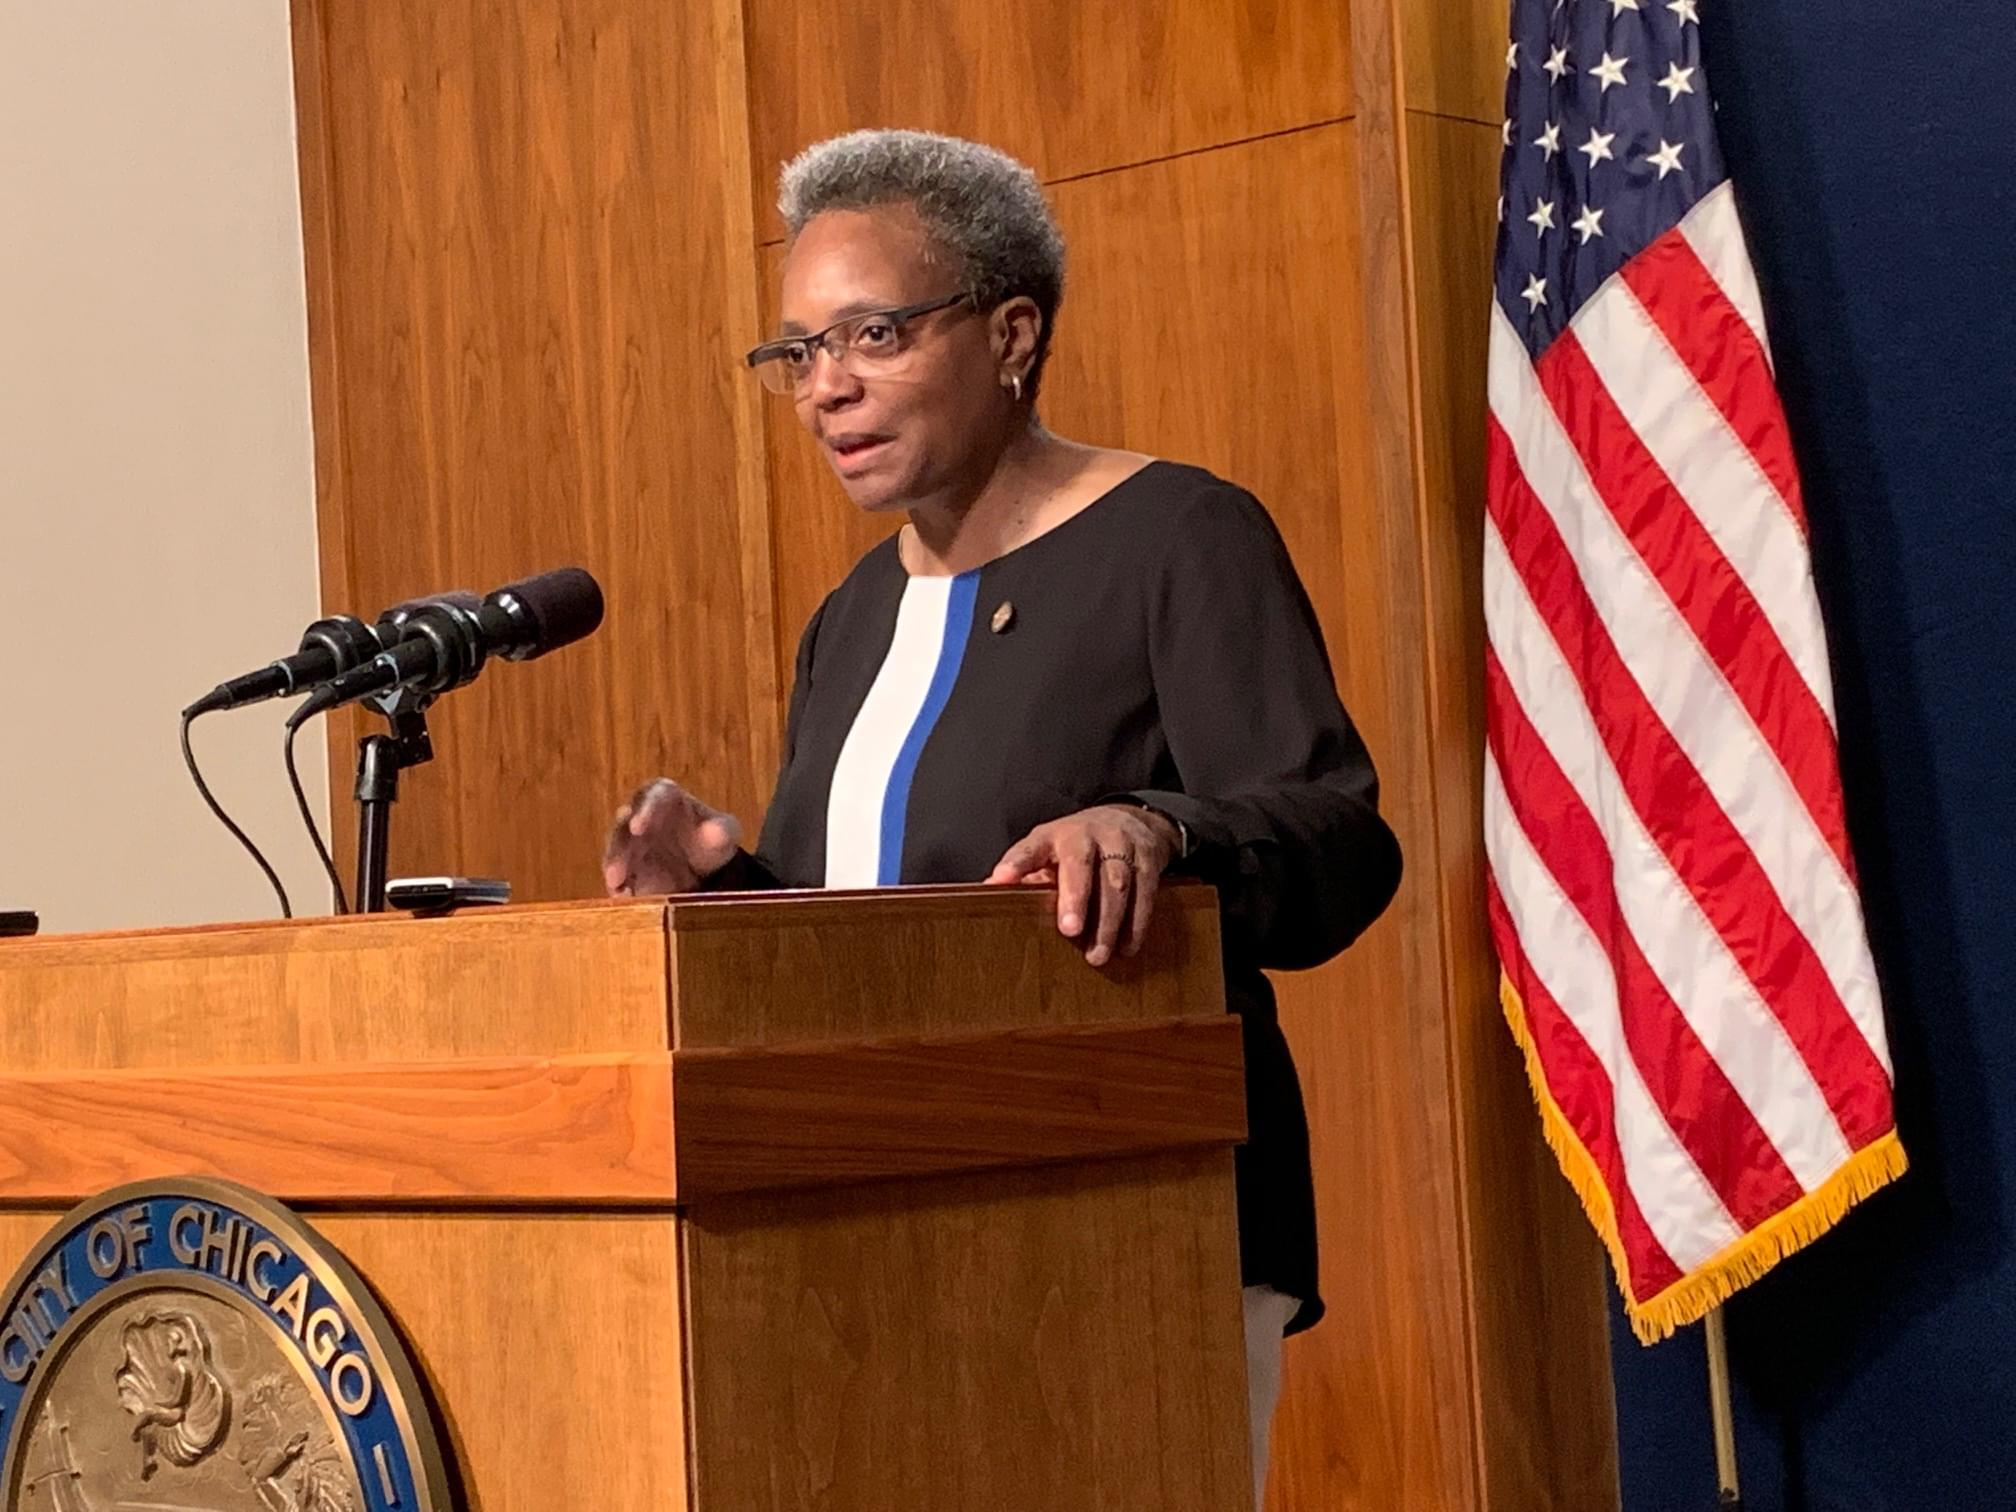 Mayor Lightfoot demanding indicted Ald Burke resign & if convicted, lose his pension too